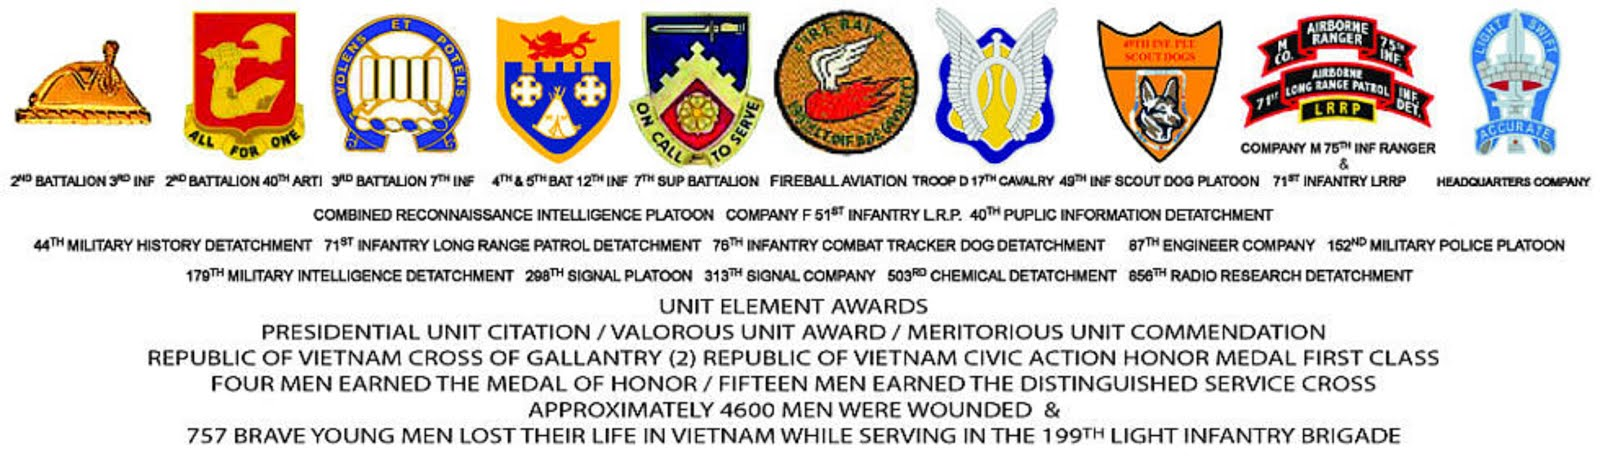 REDCATCHER  - 199th LIGHT INFANTRY BRIGADE COMBAT UNITS FOR VIETNAM